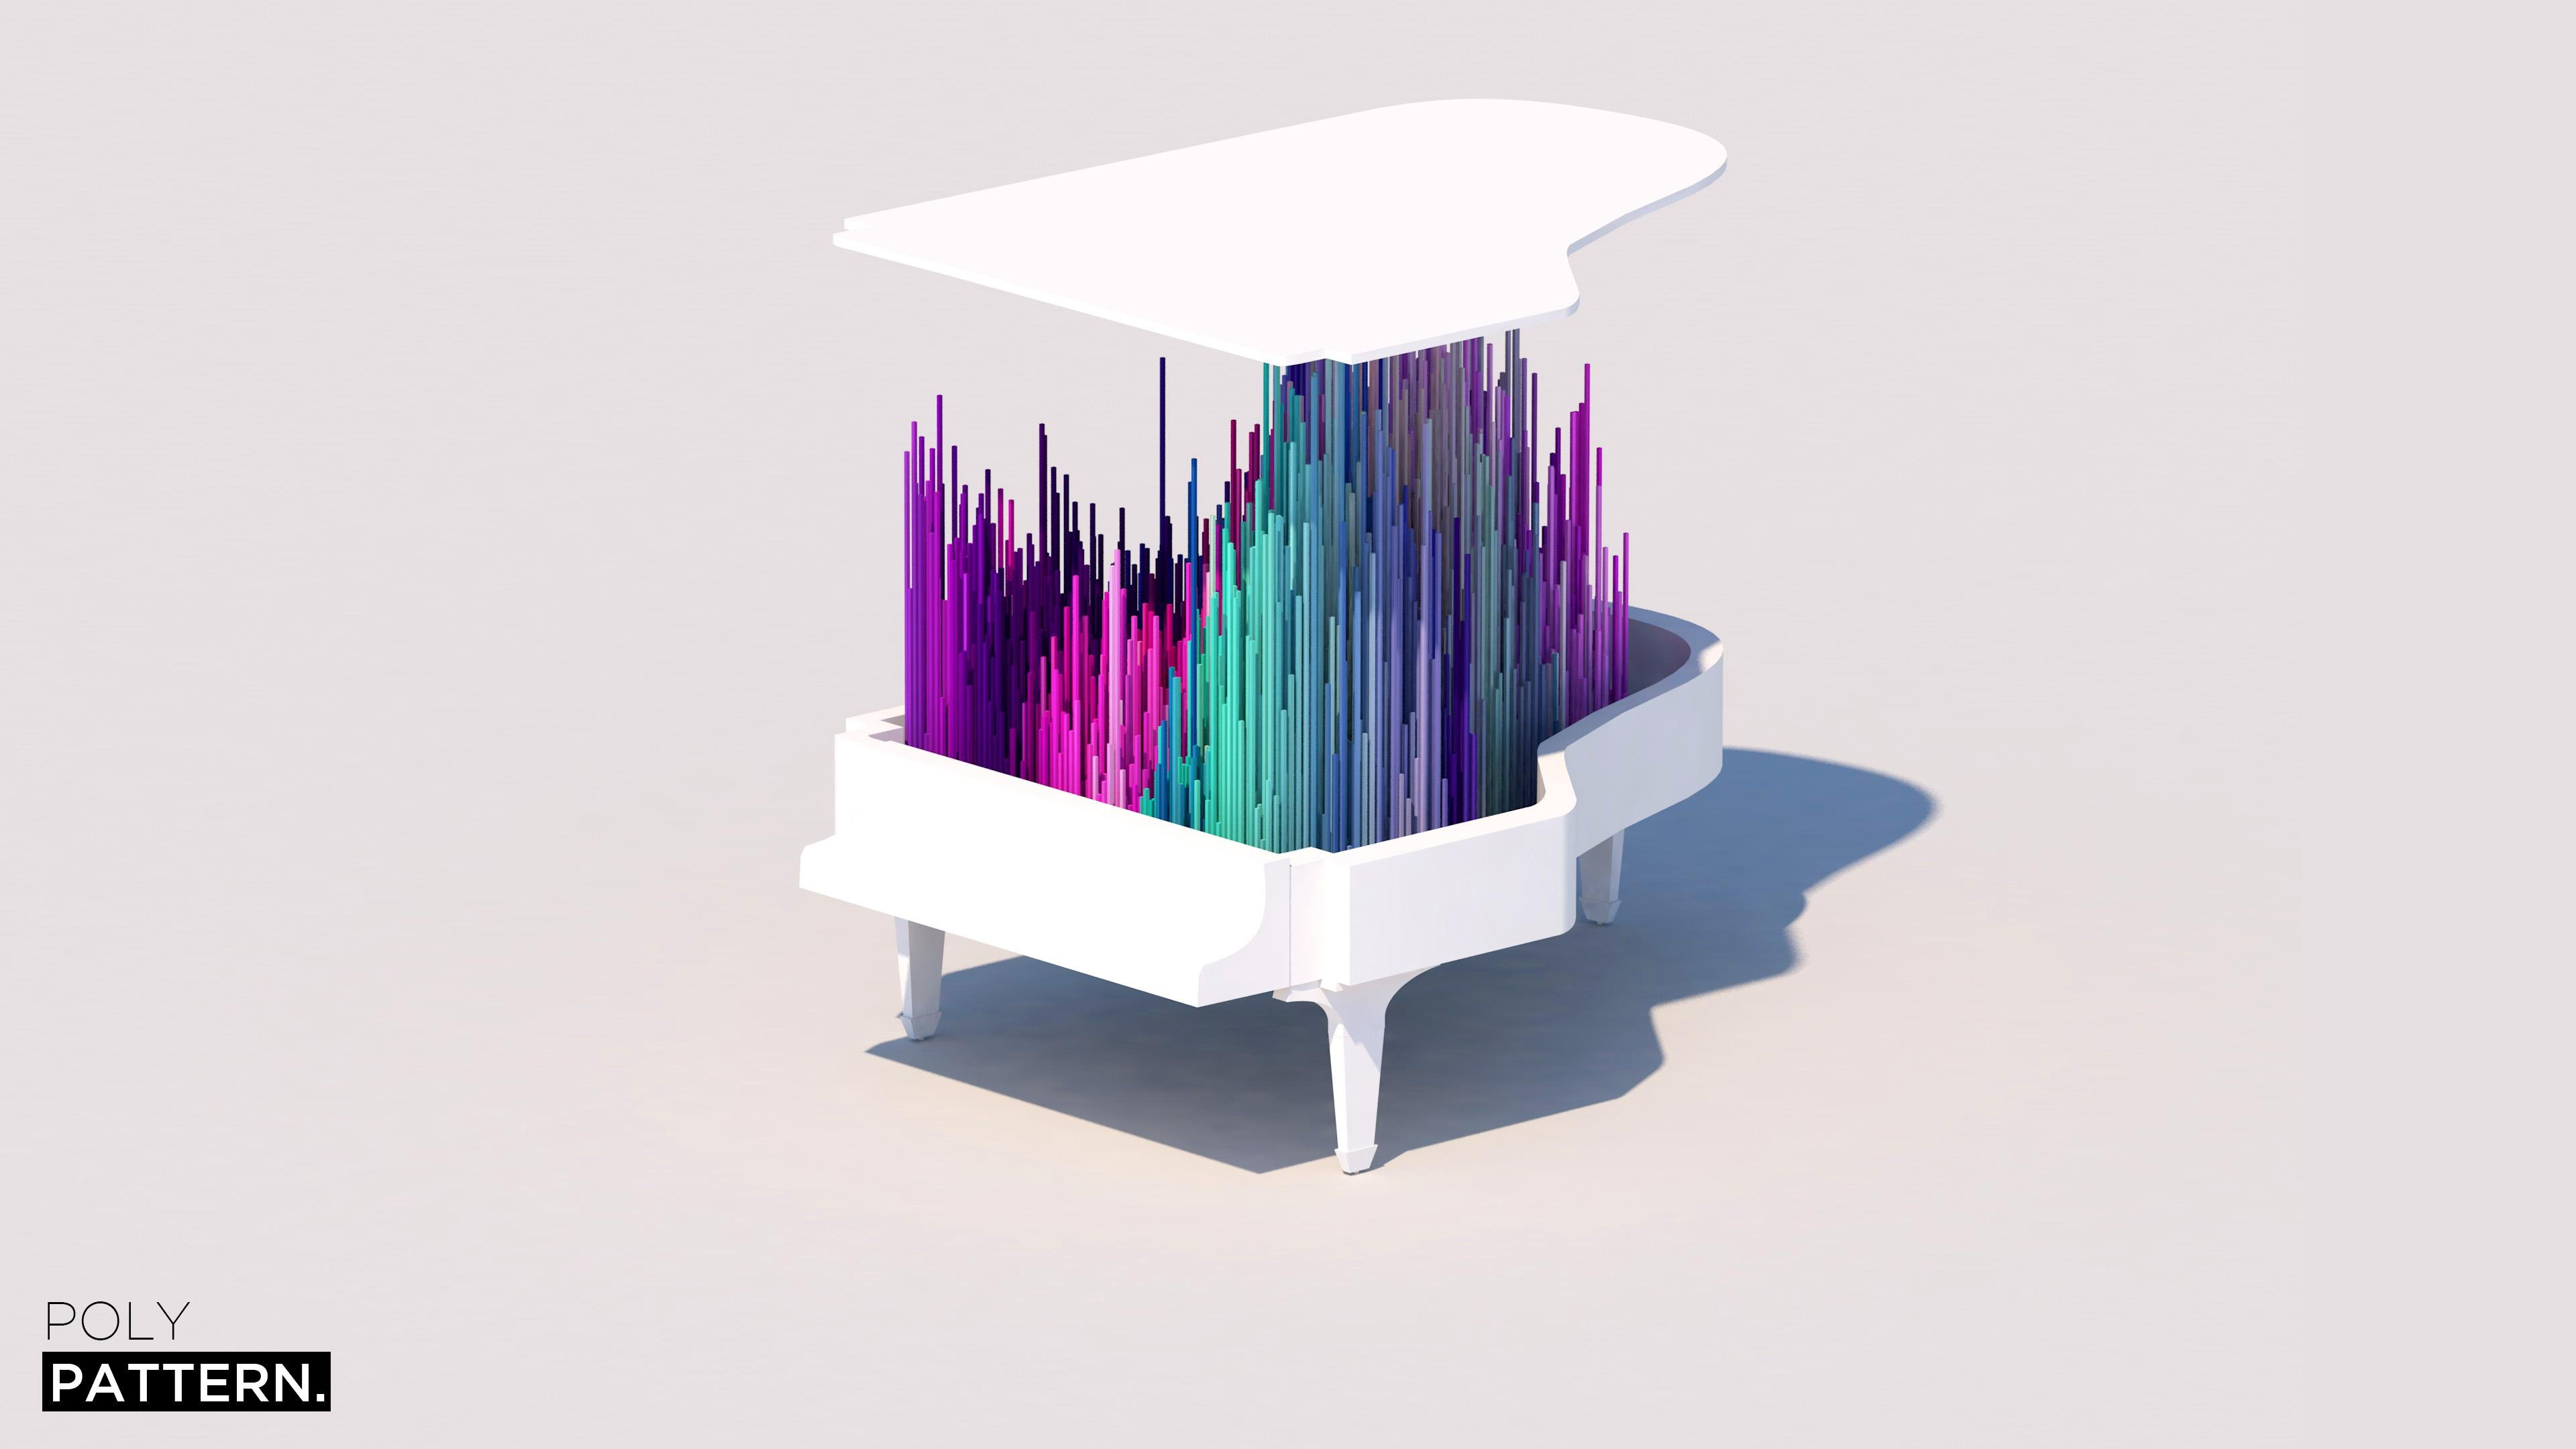 abstract piano art wallpaper - photo #26